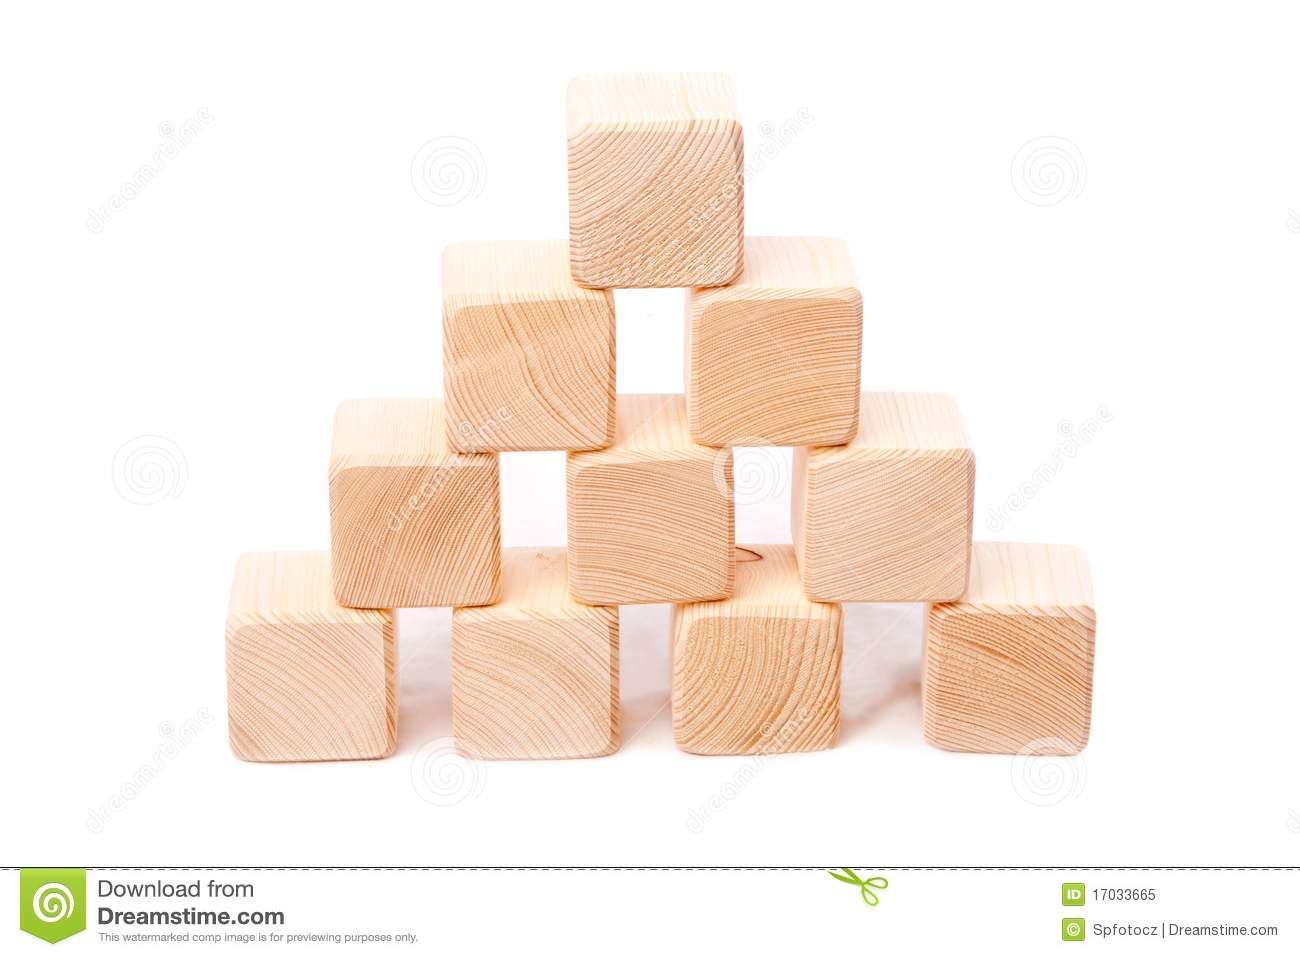 Pyramid From Wooden Cubes Royalty Free Stock Photo - Image: 17033665